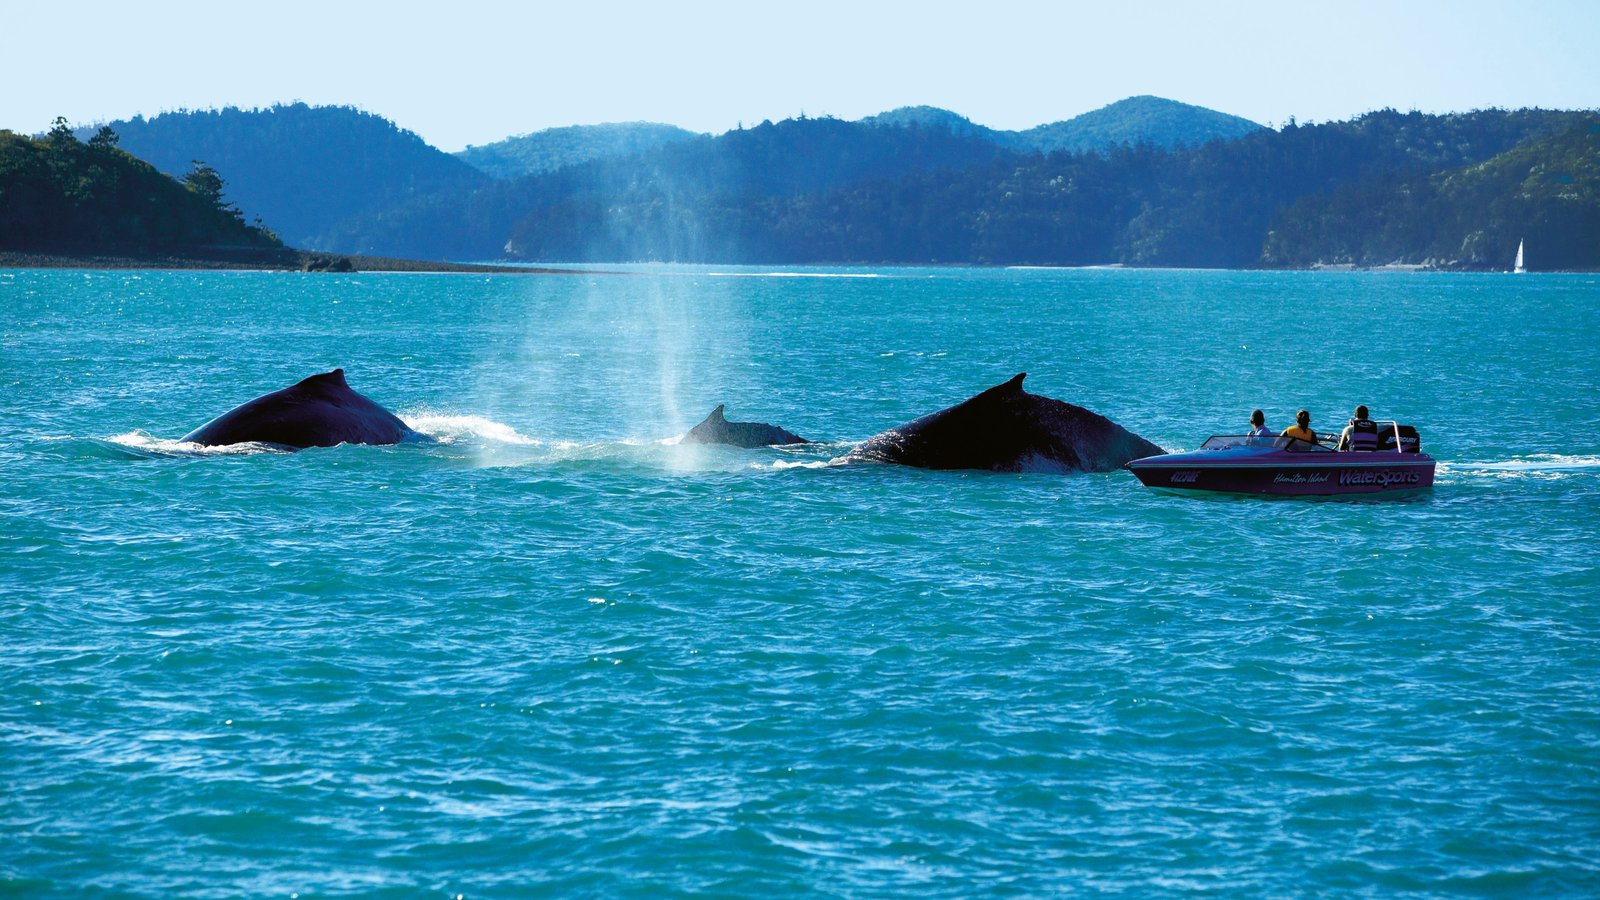 Whitsunday Islands which includes general coastal views, landscape views and marine life